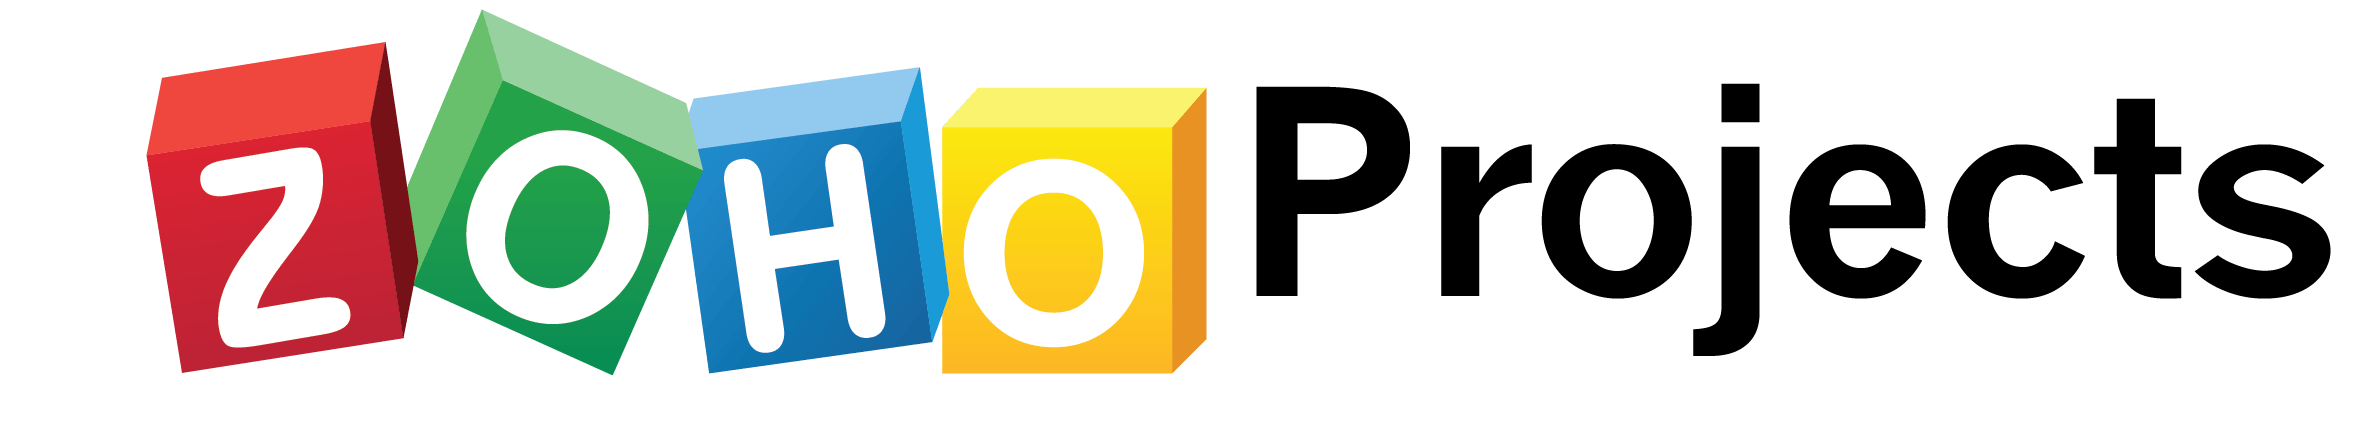 zoho-projects_logo